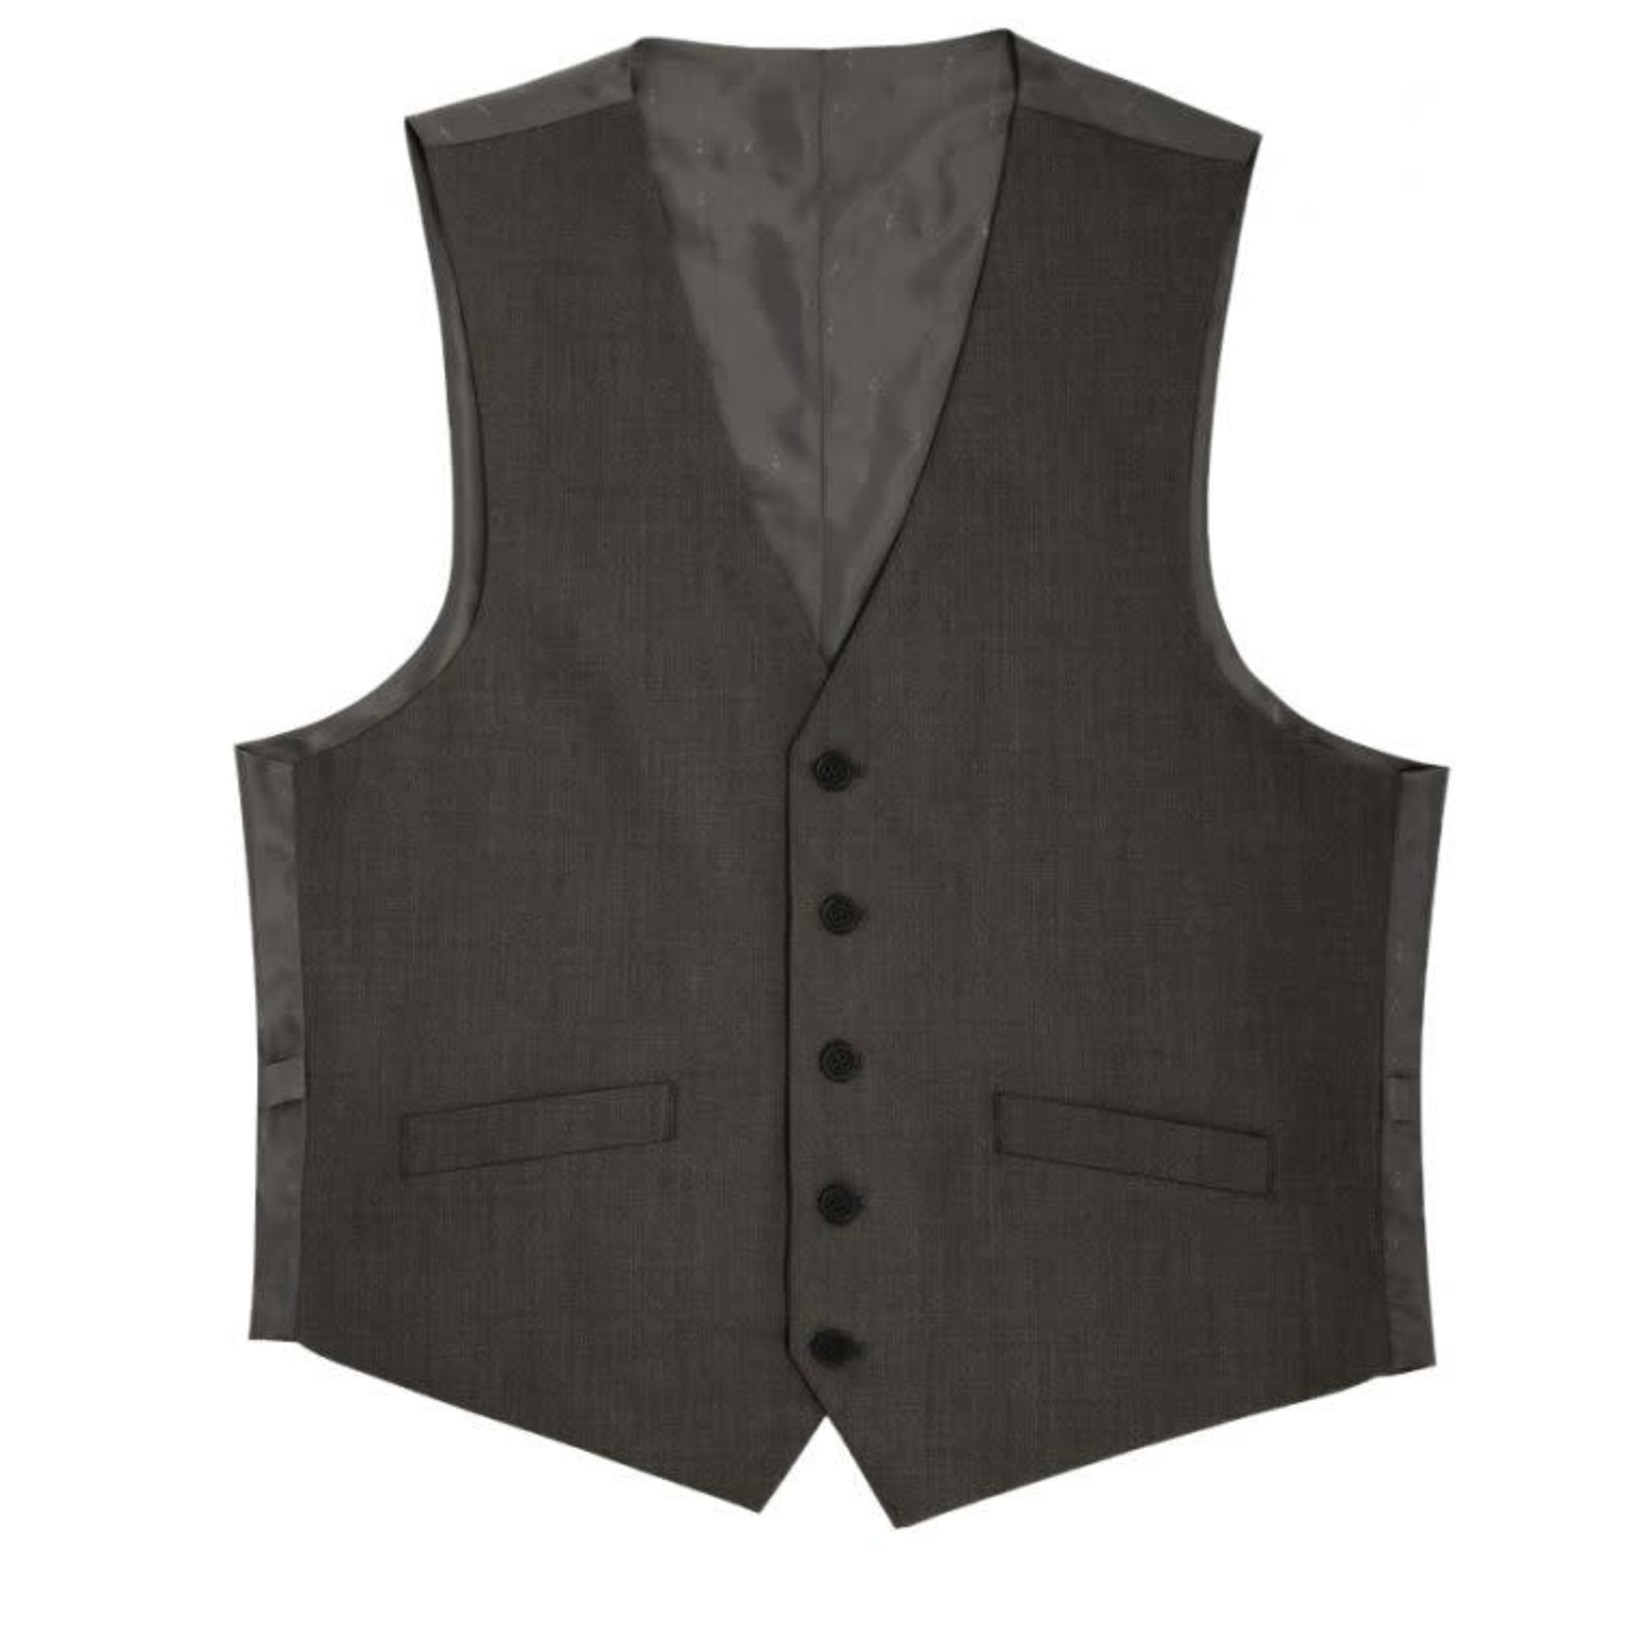 Renoir Renoir Slim Fit Formal Vest - 4 Colors